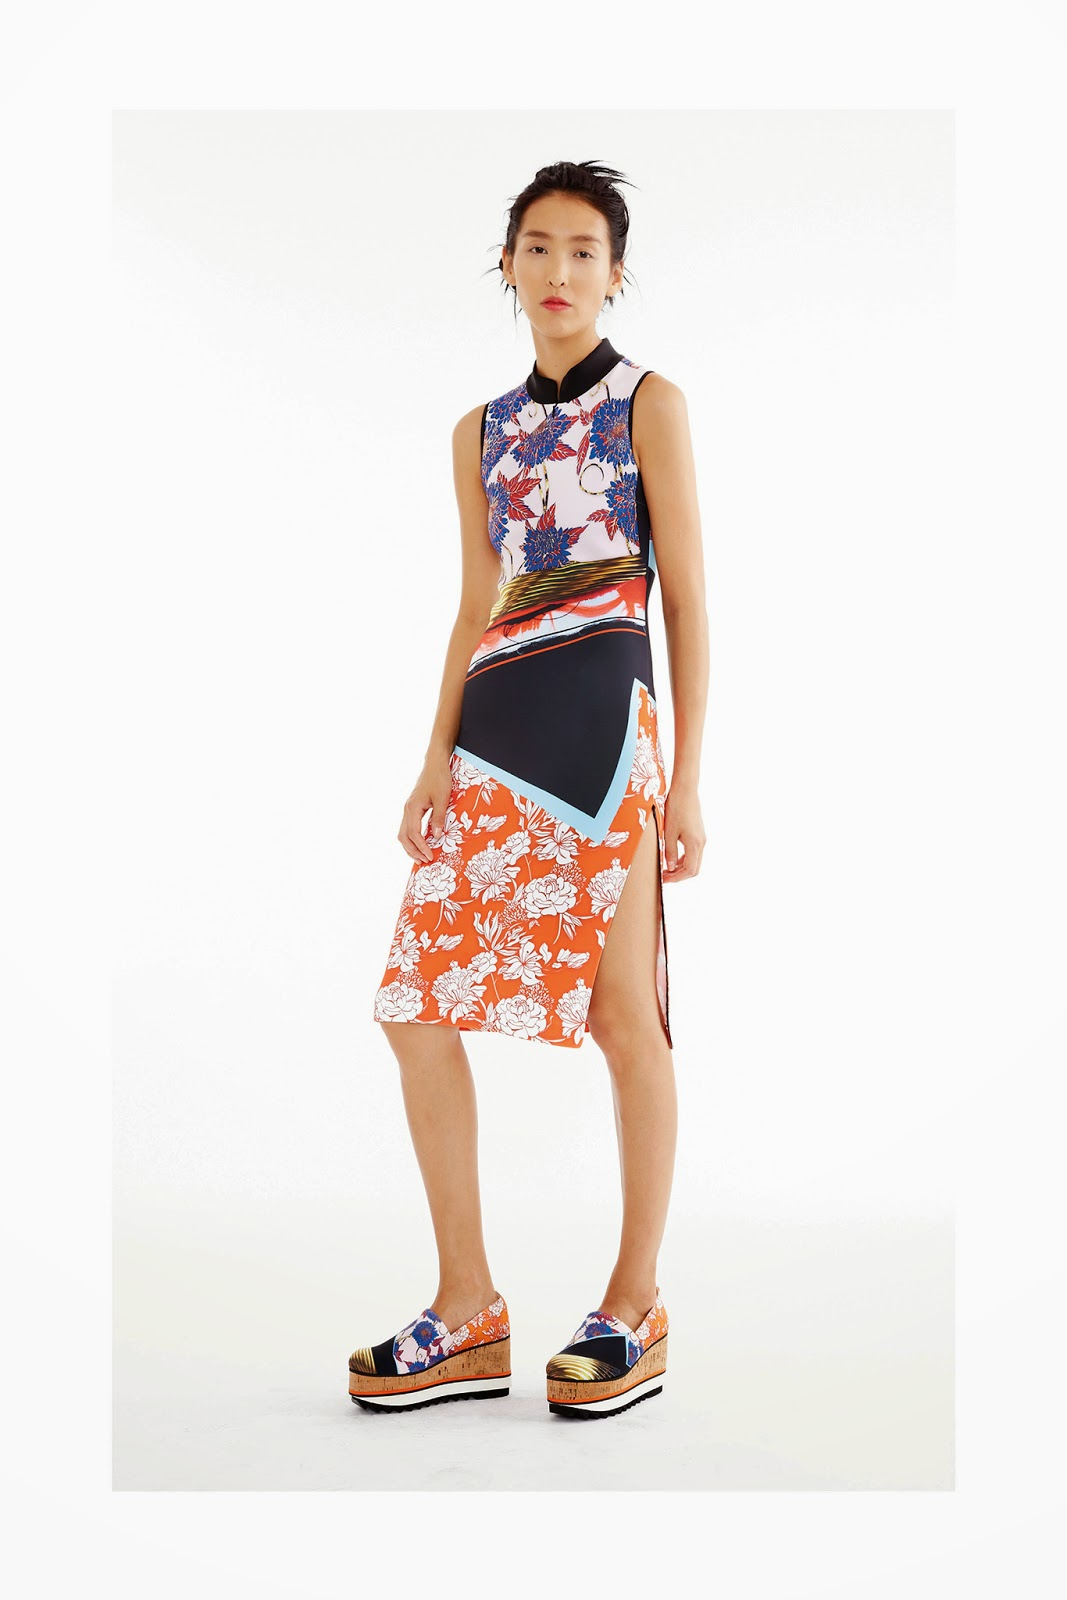 SS15 by Clover Canyon - The Mastery of Print Mixing